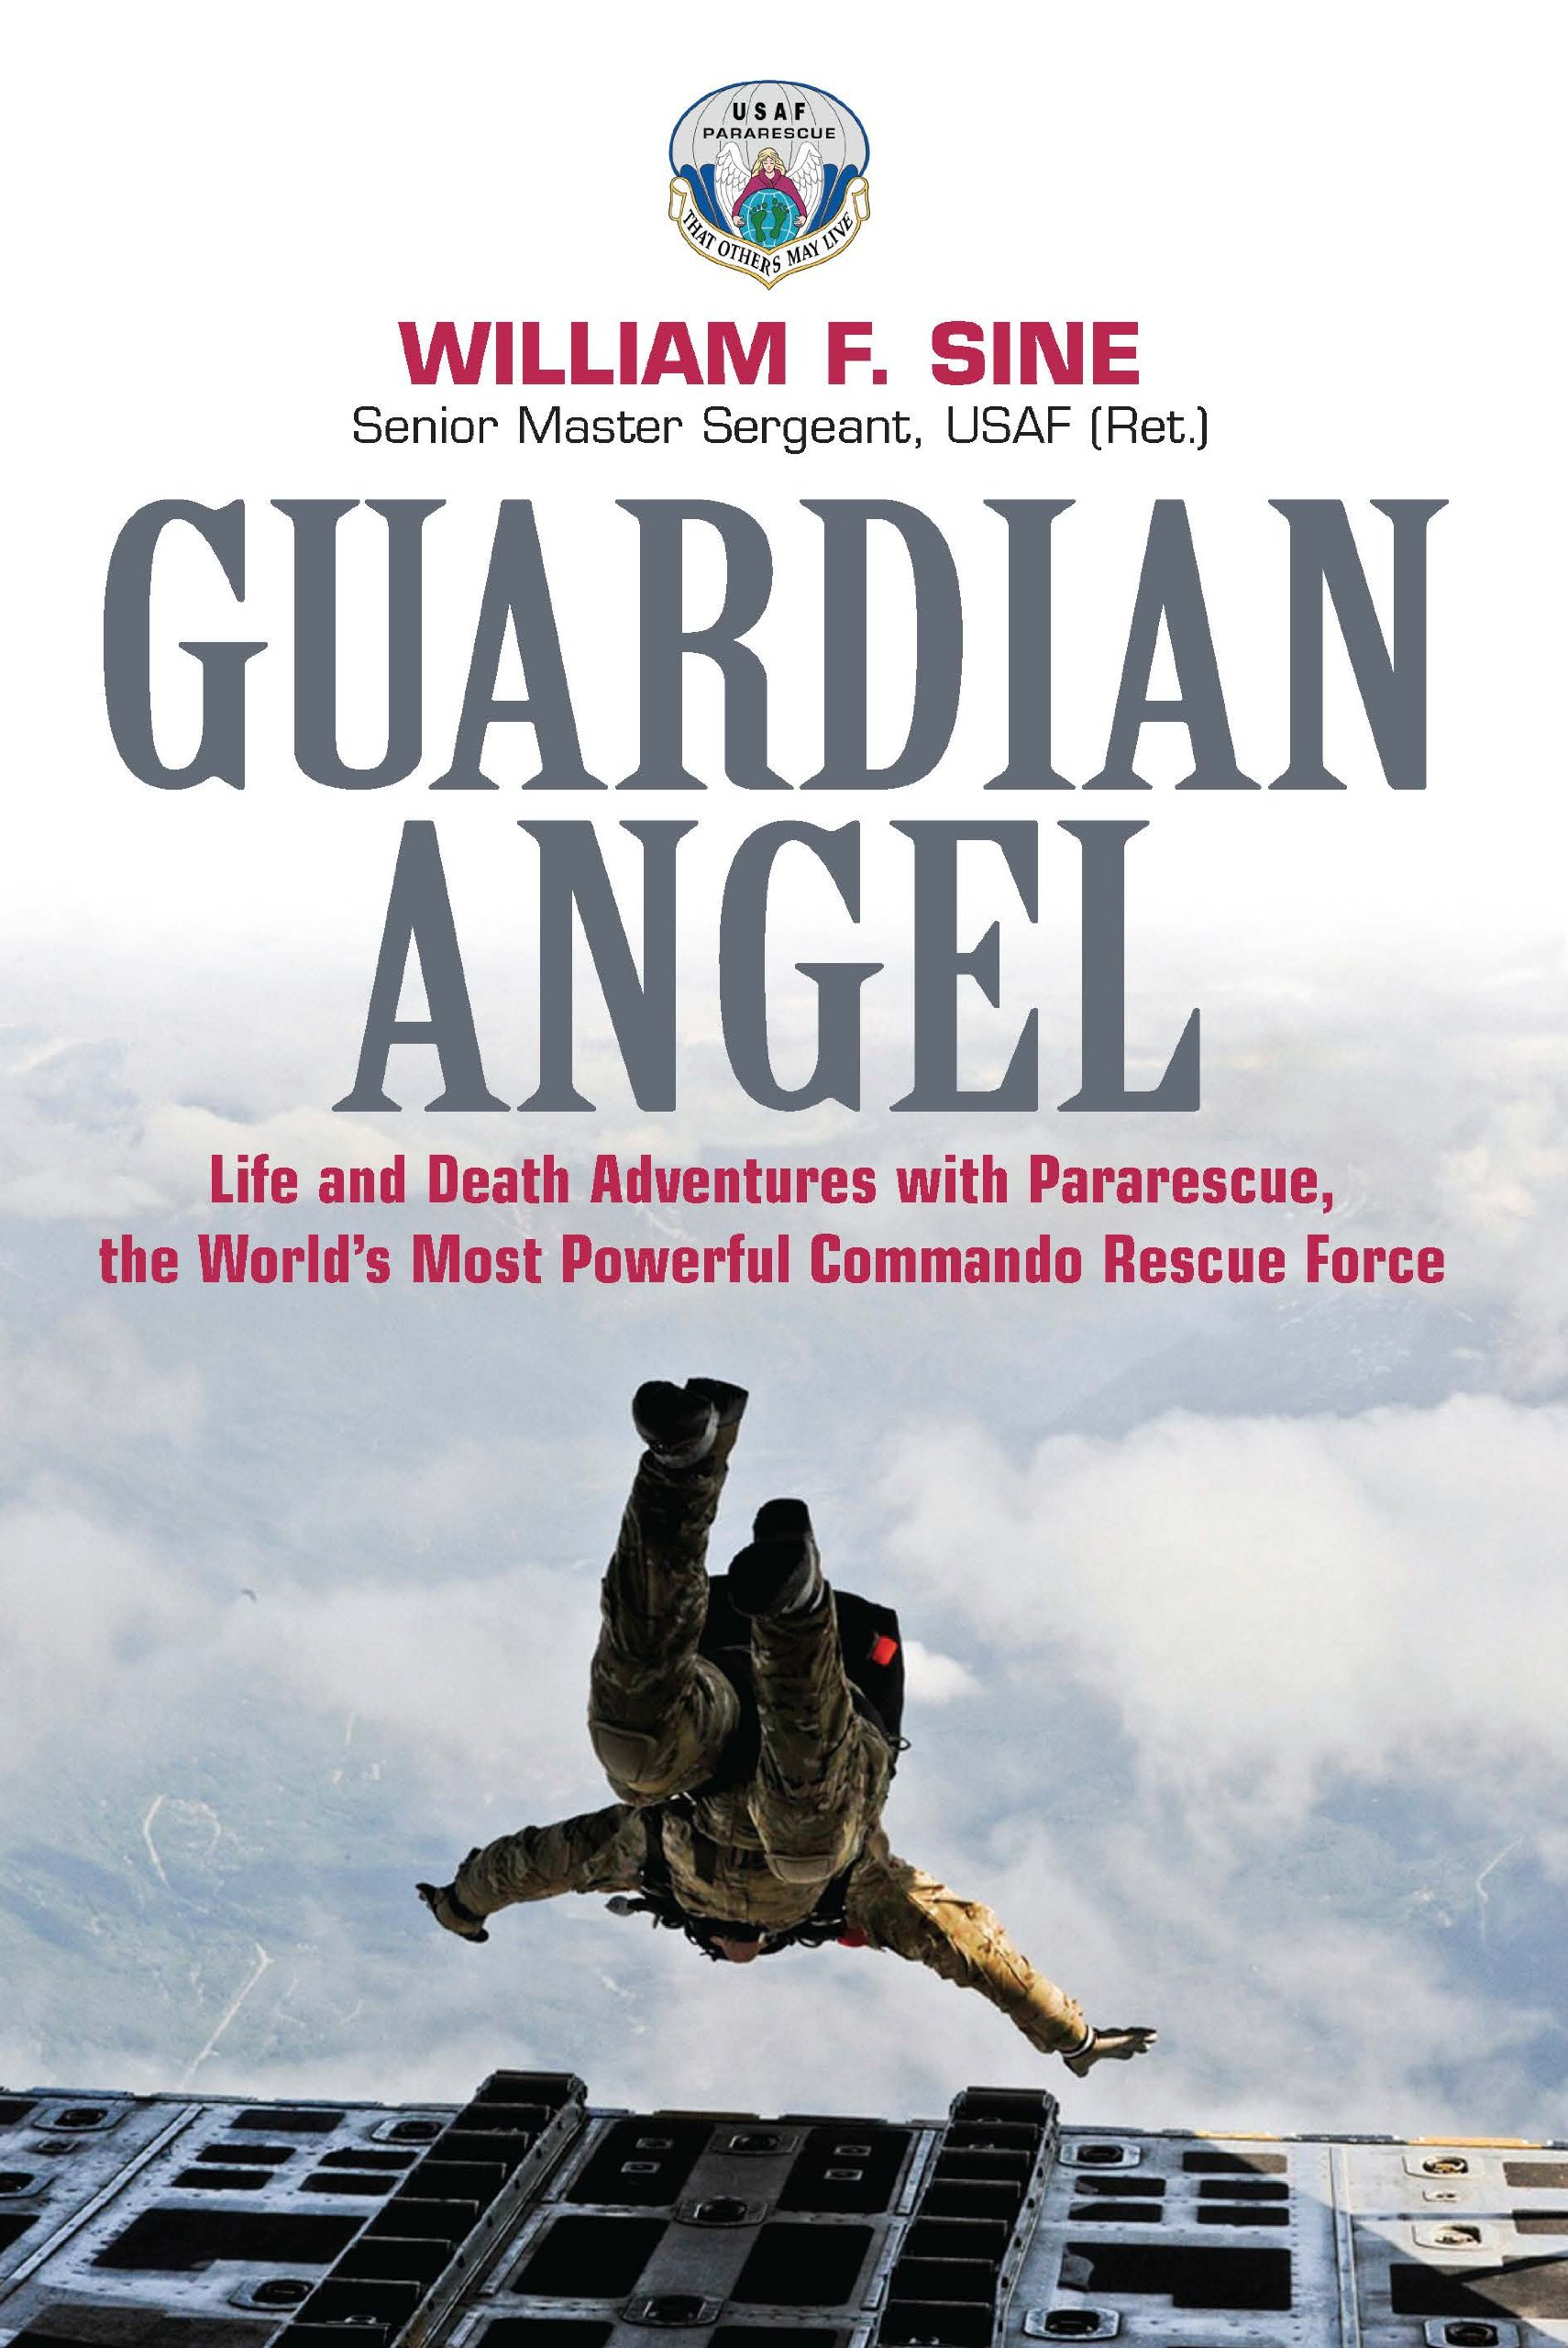 Guardian angel life and death adventures with pararescue the guardian angel life and death adventures with pararescue the worlds most powerful commando rescue force william sine 9781612002514 amazon books fandeluxe Gallery